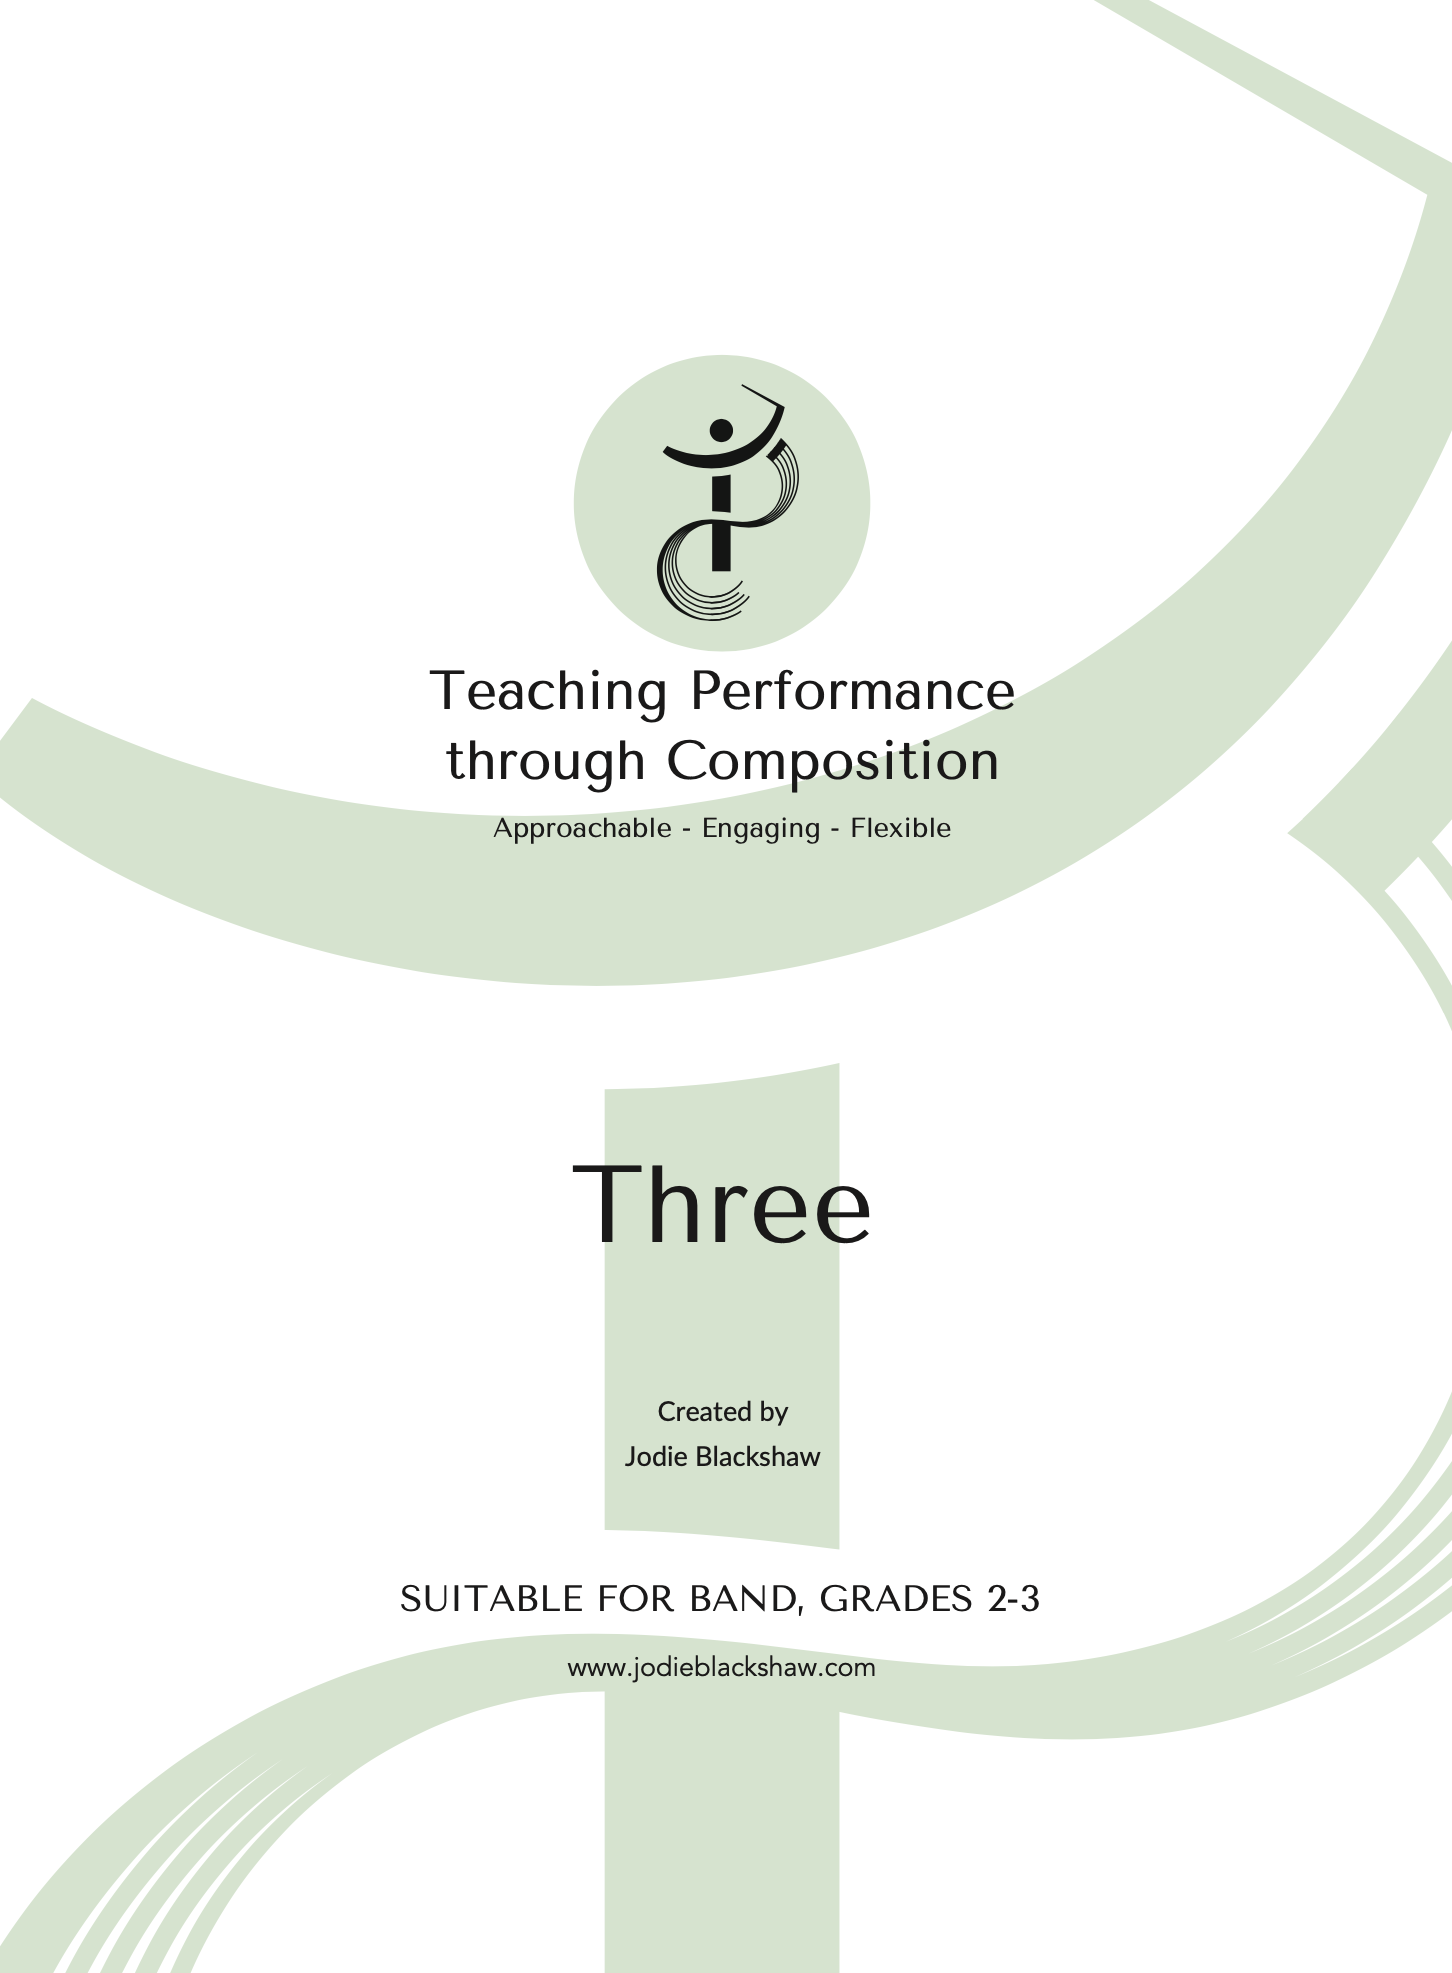 Teaching Performance Through Composition, Volume Three by Jodie Blackshaw